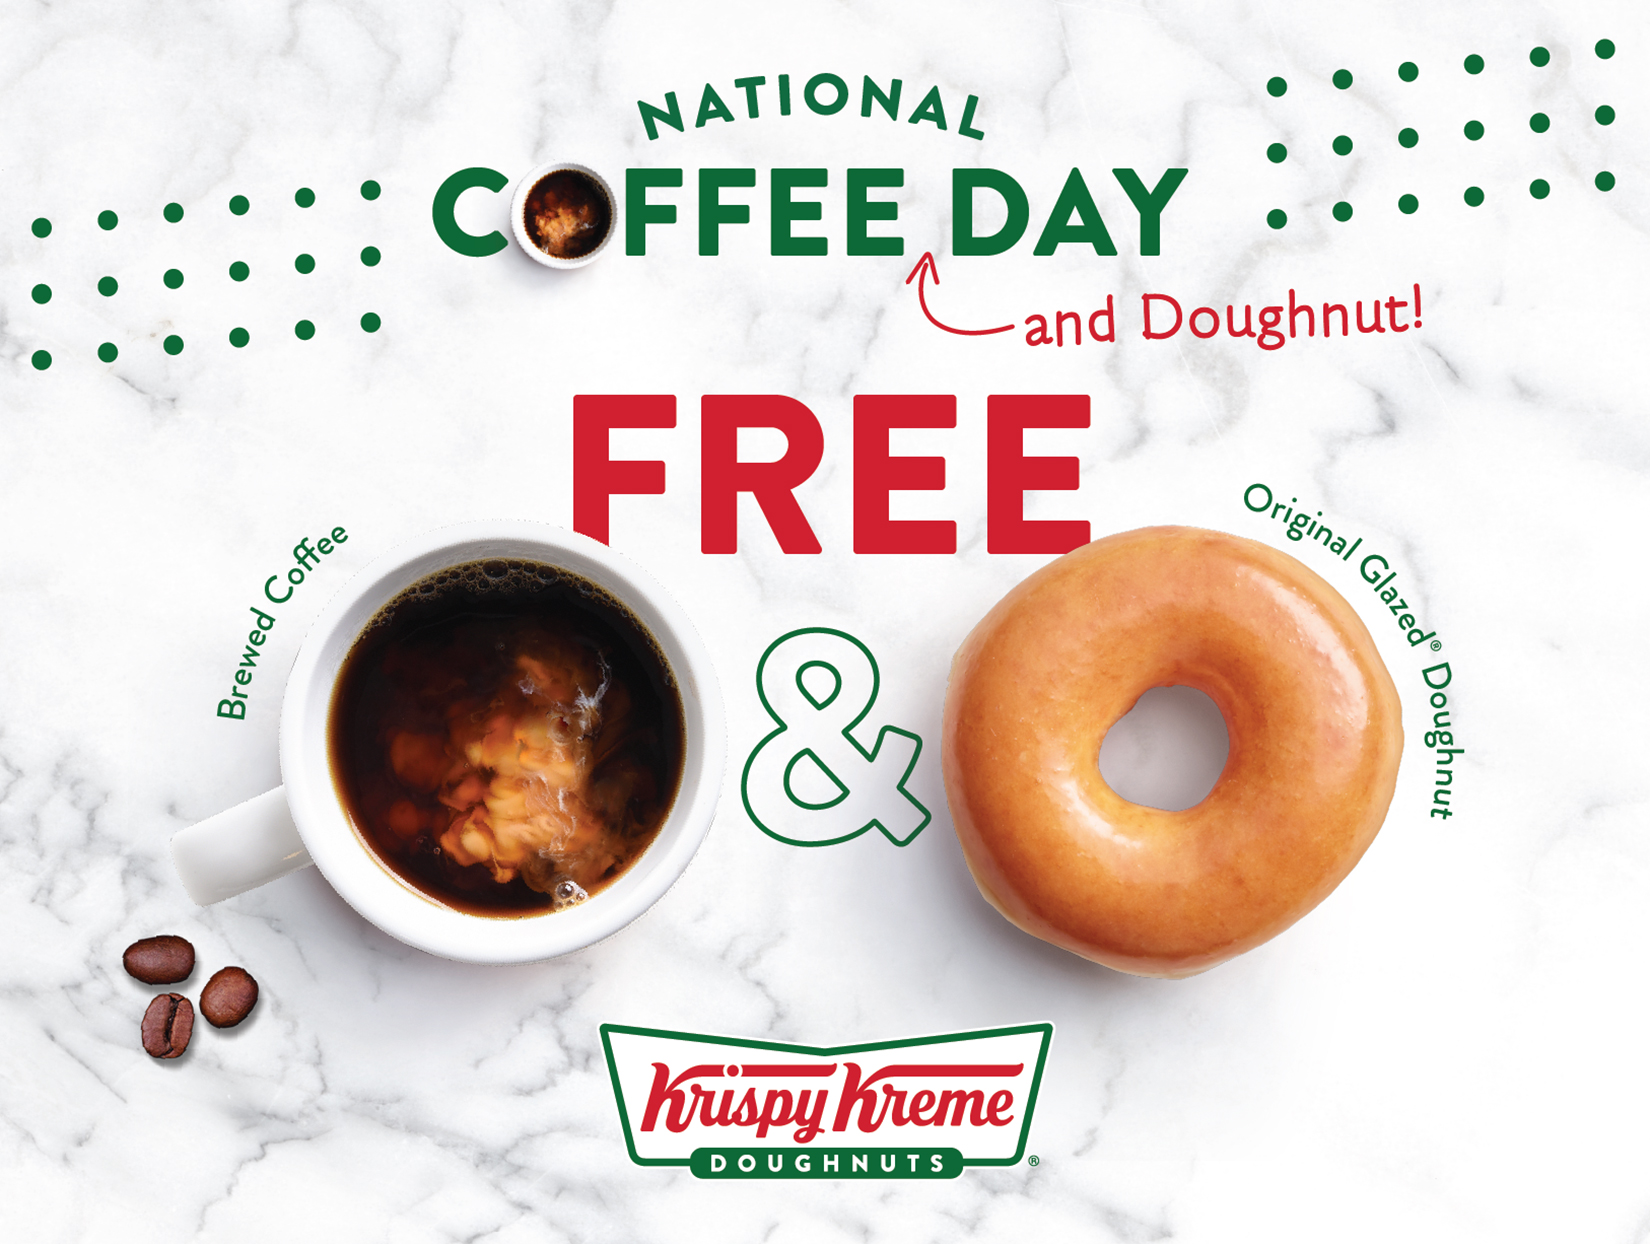 Krispy Kreme National Coffee Day coffee and donut on marbled countertop